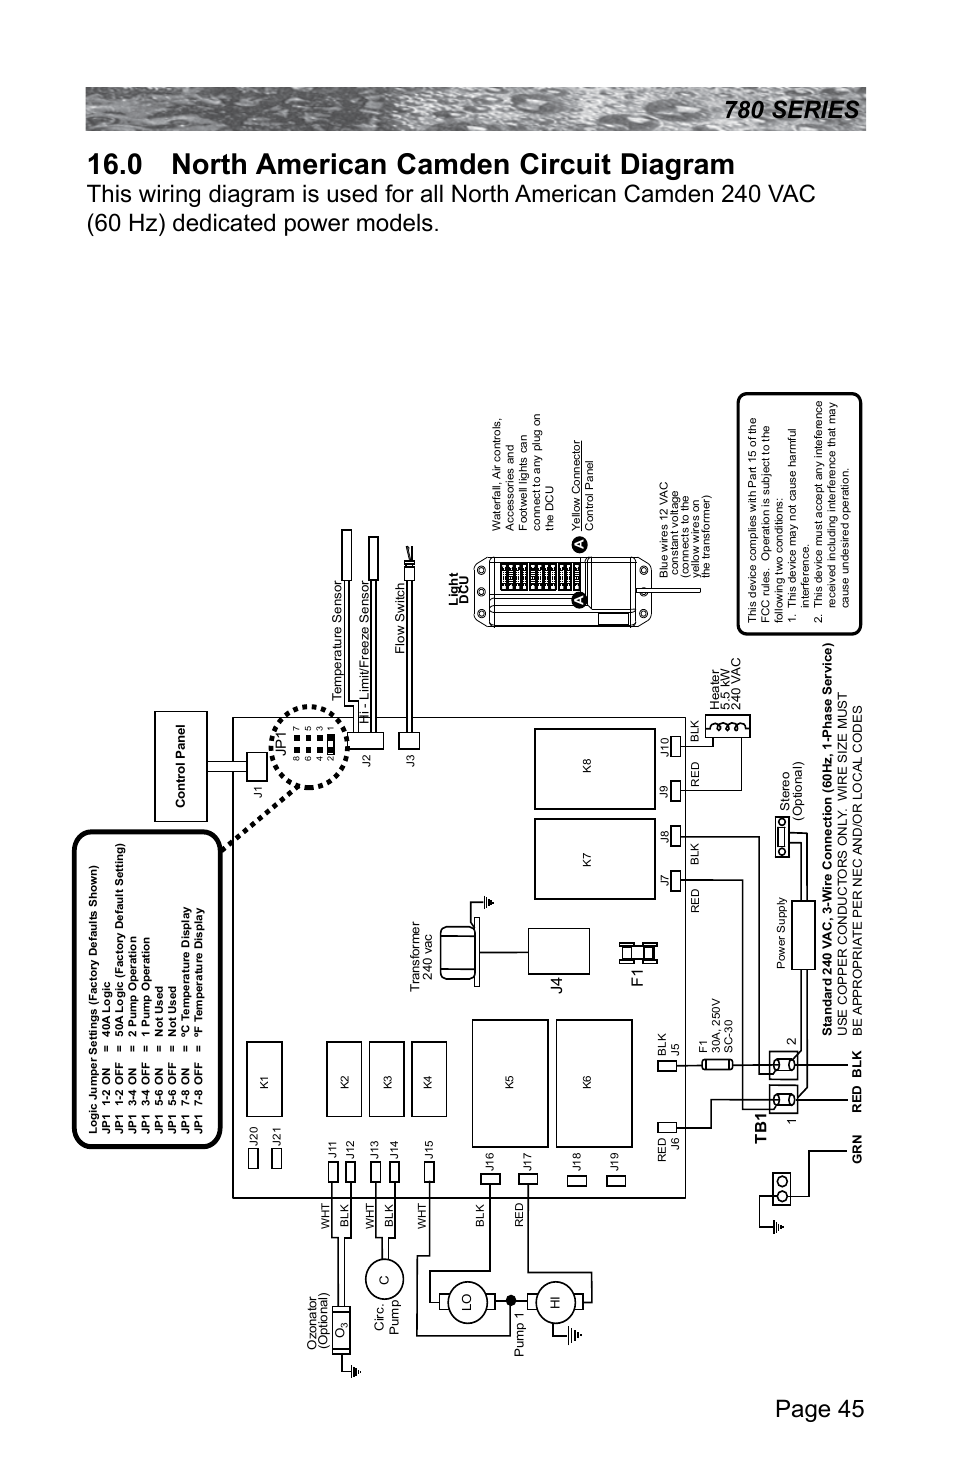 0 North American Camden Circuit Diagram